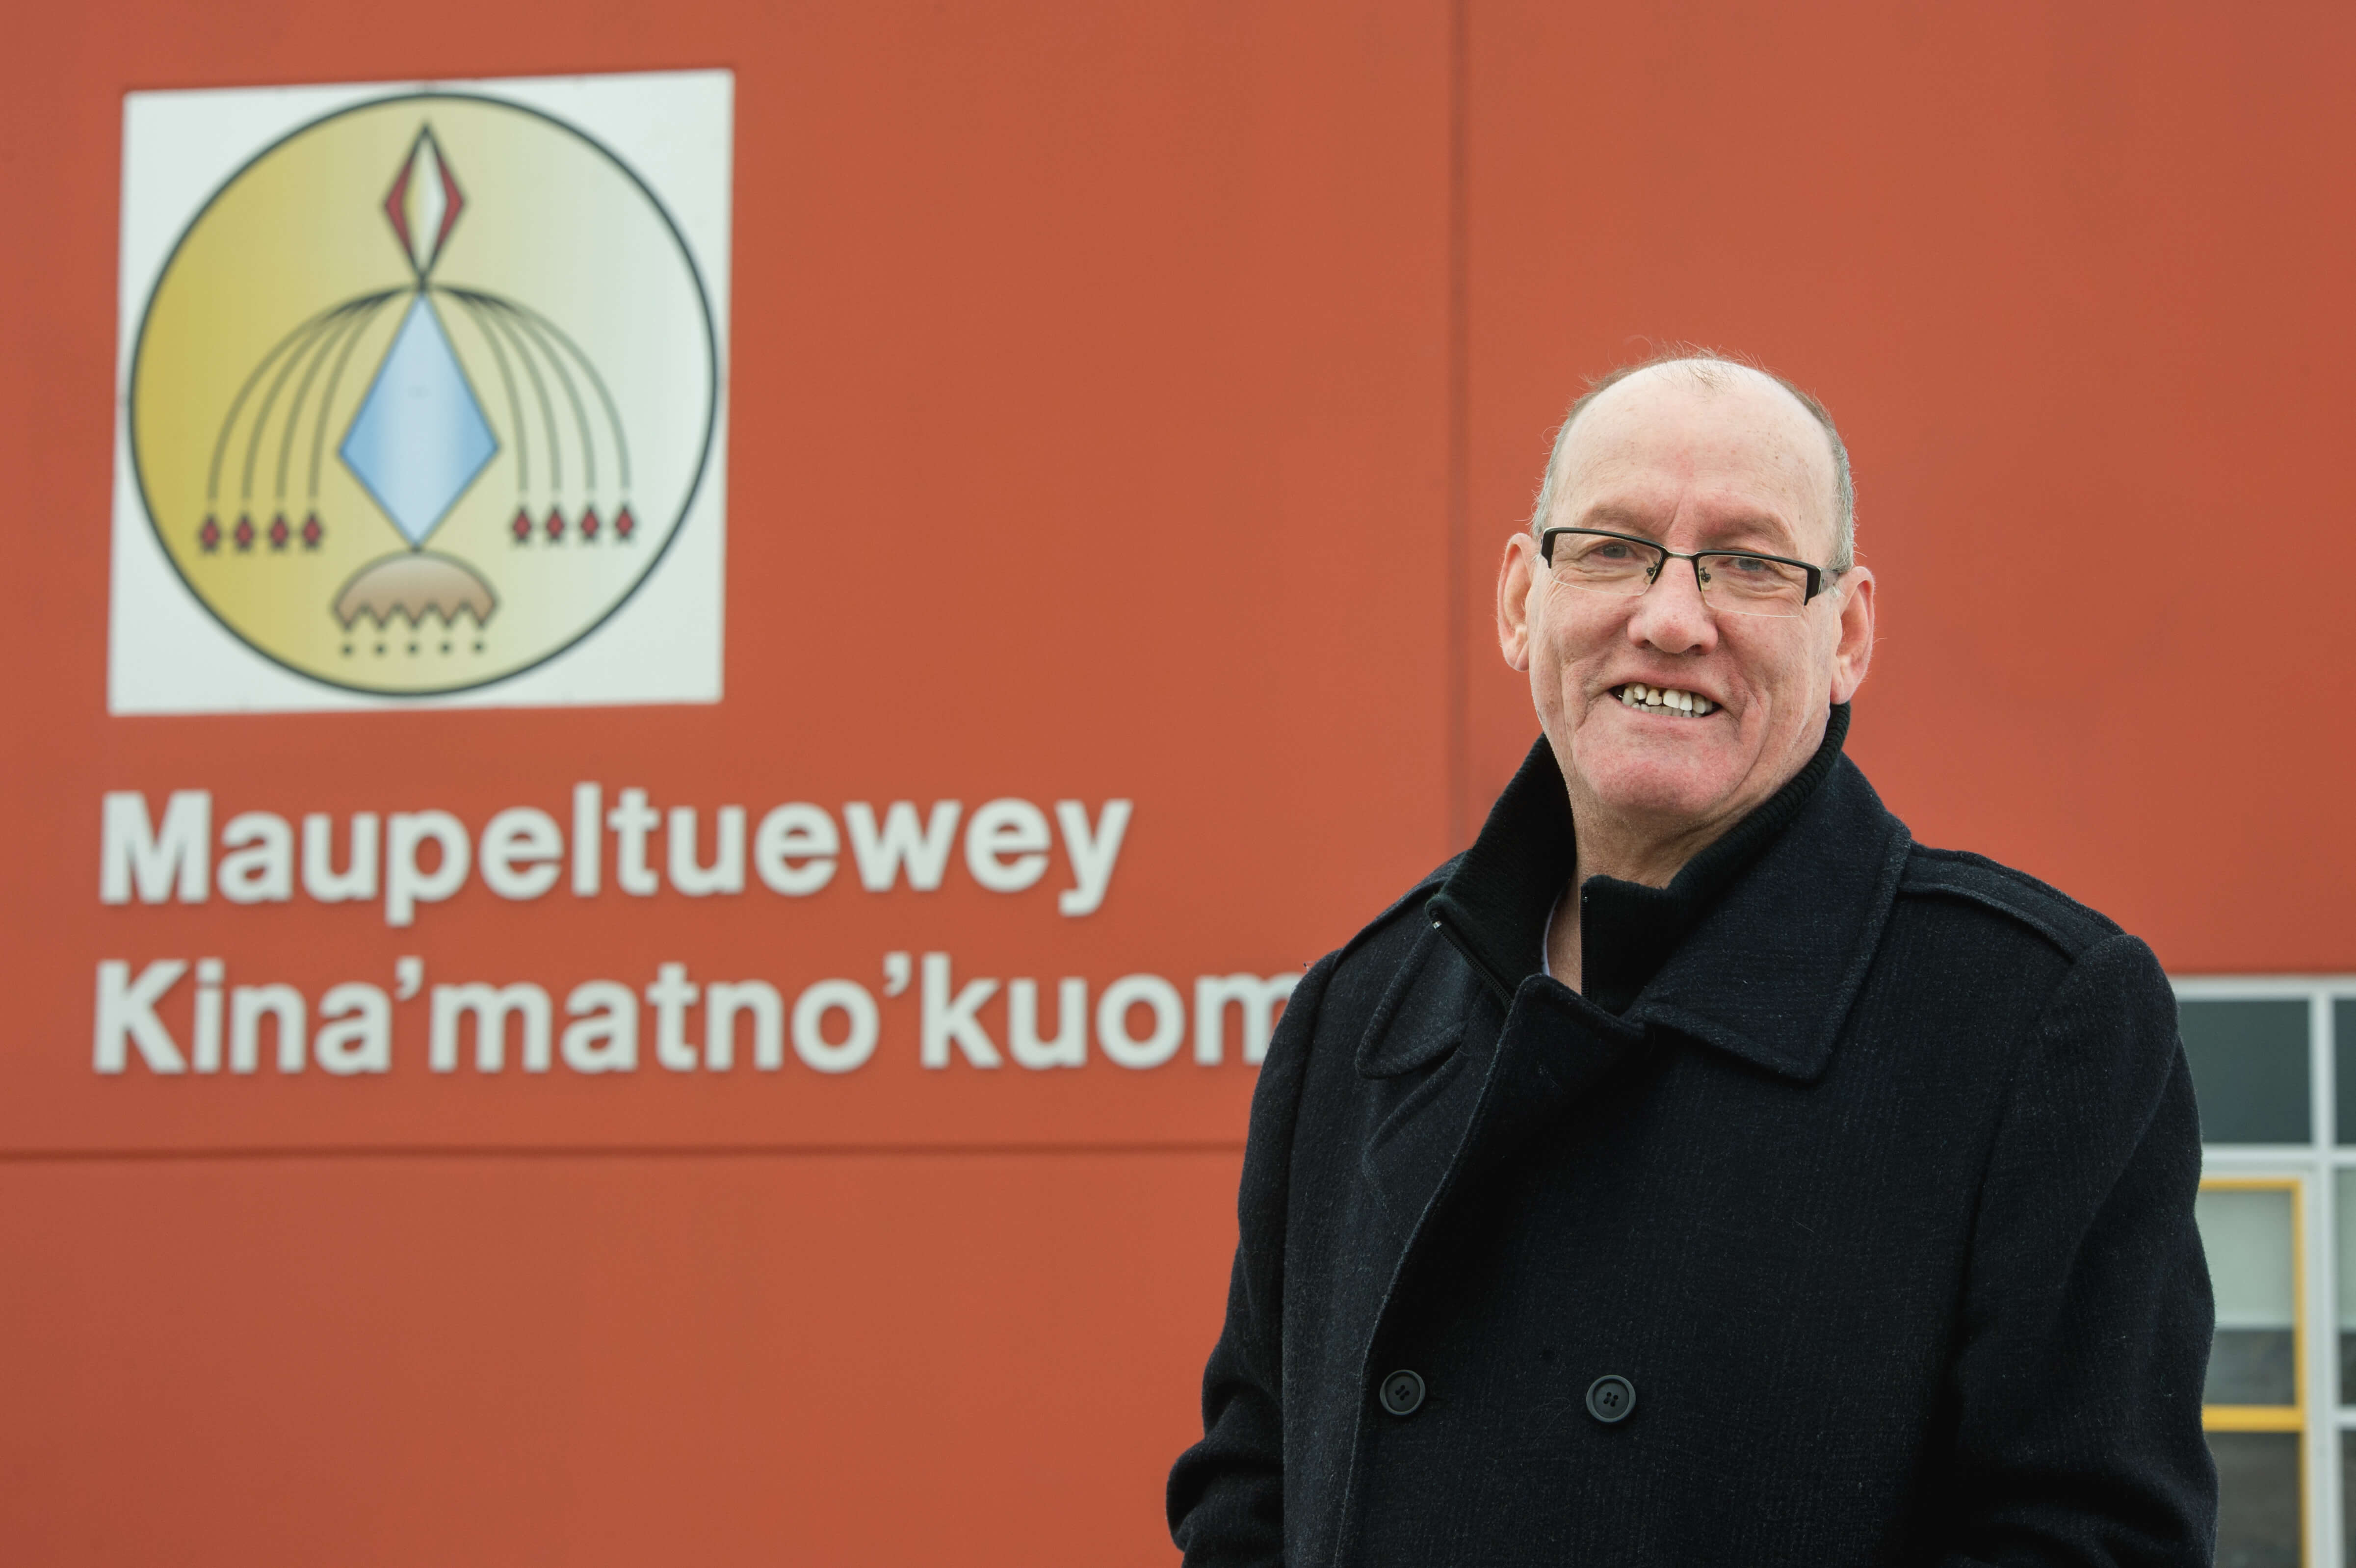 Man standing in front of a wall with a First Nation school name